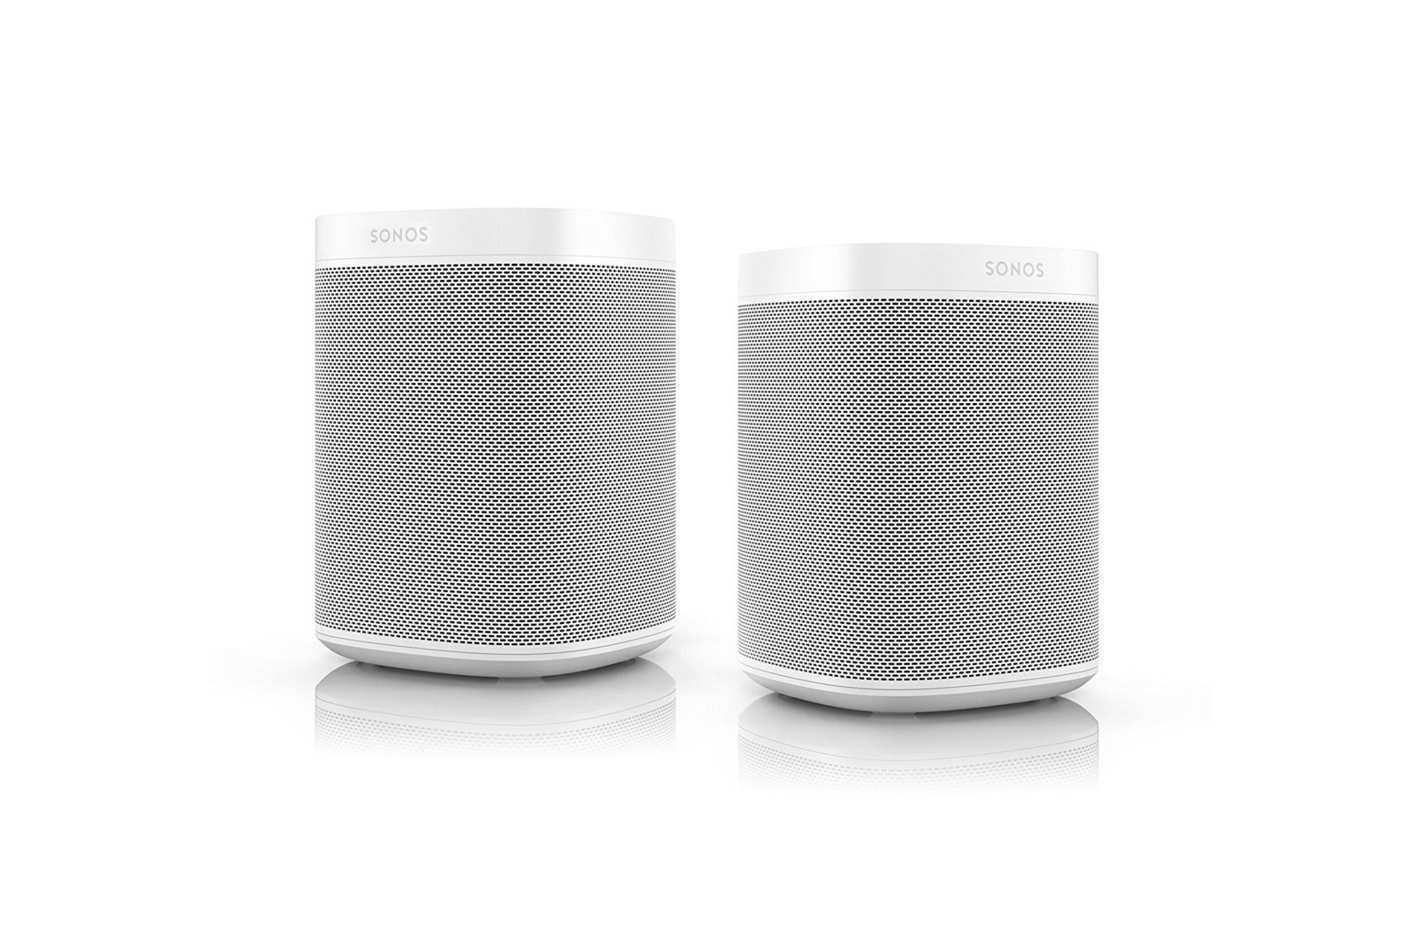 Sonos One and Sonos Beam